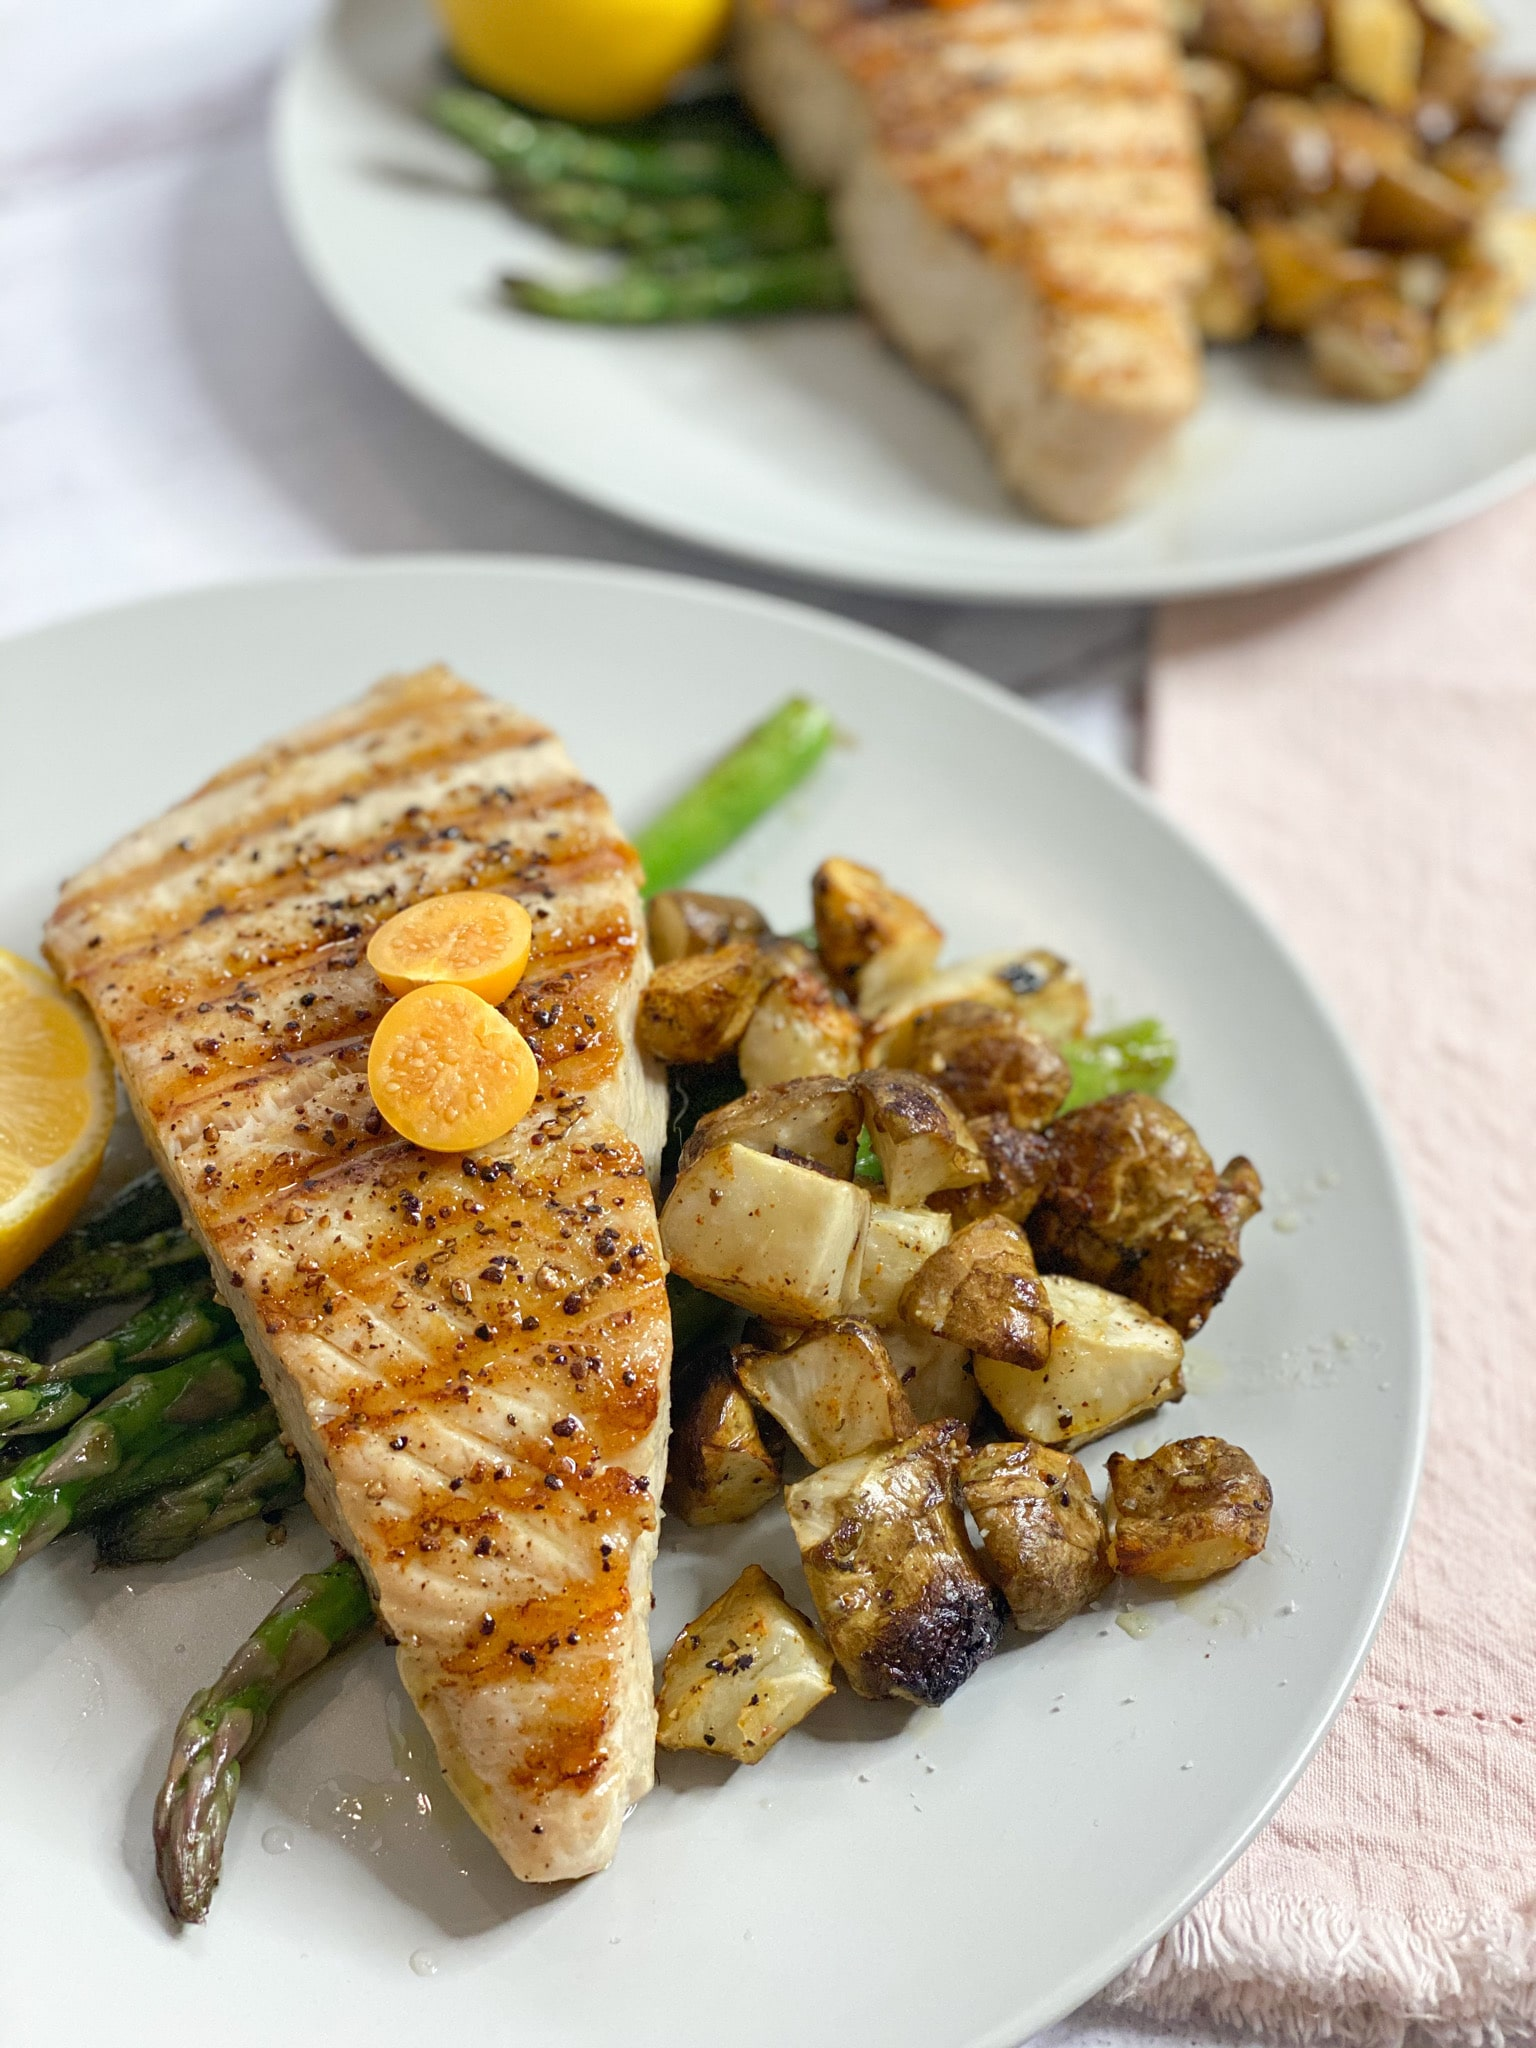 7 Ingredient Dinner: Opah Fish with Sunchokes and Asparagus